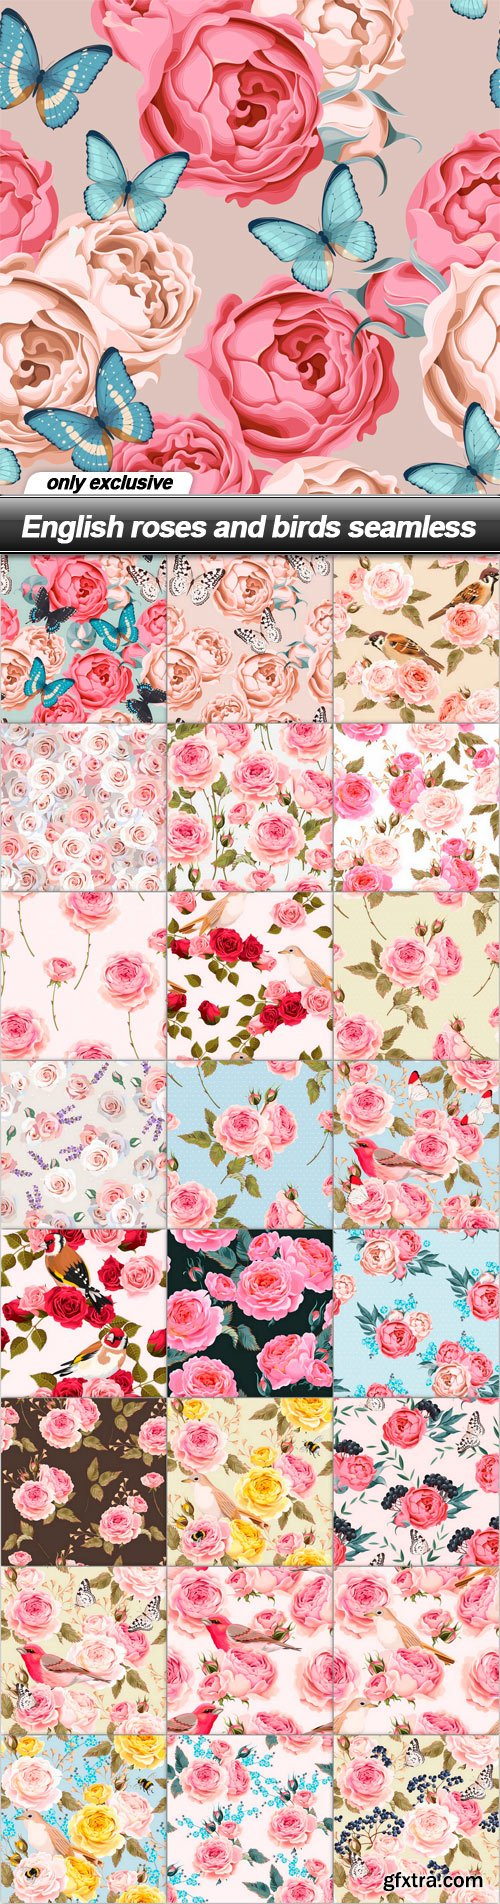 English roses and birds seamless - 25 EPS